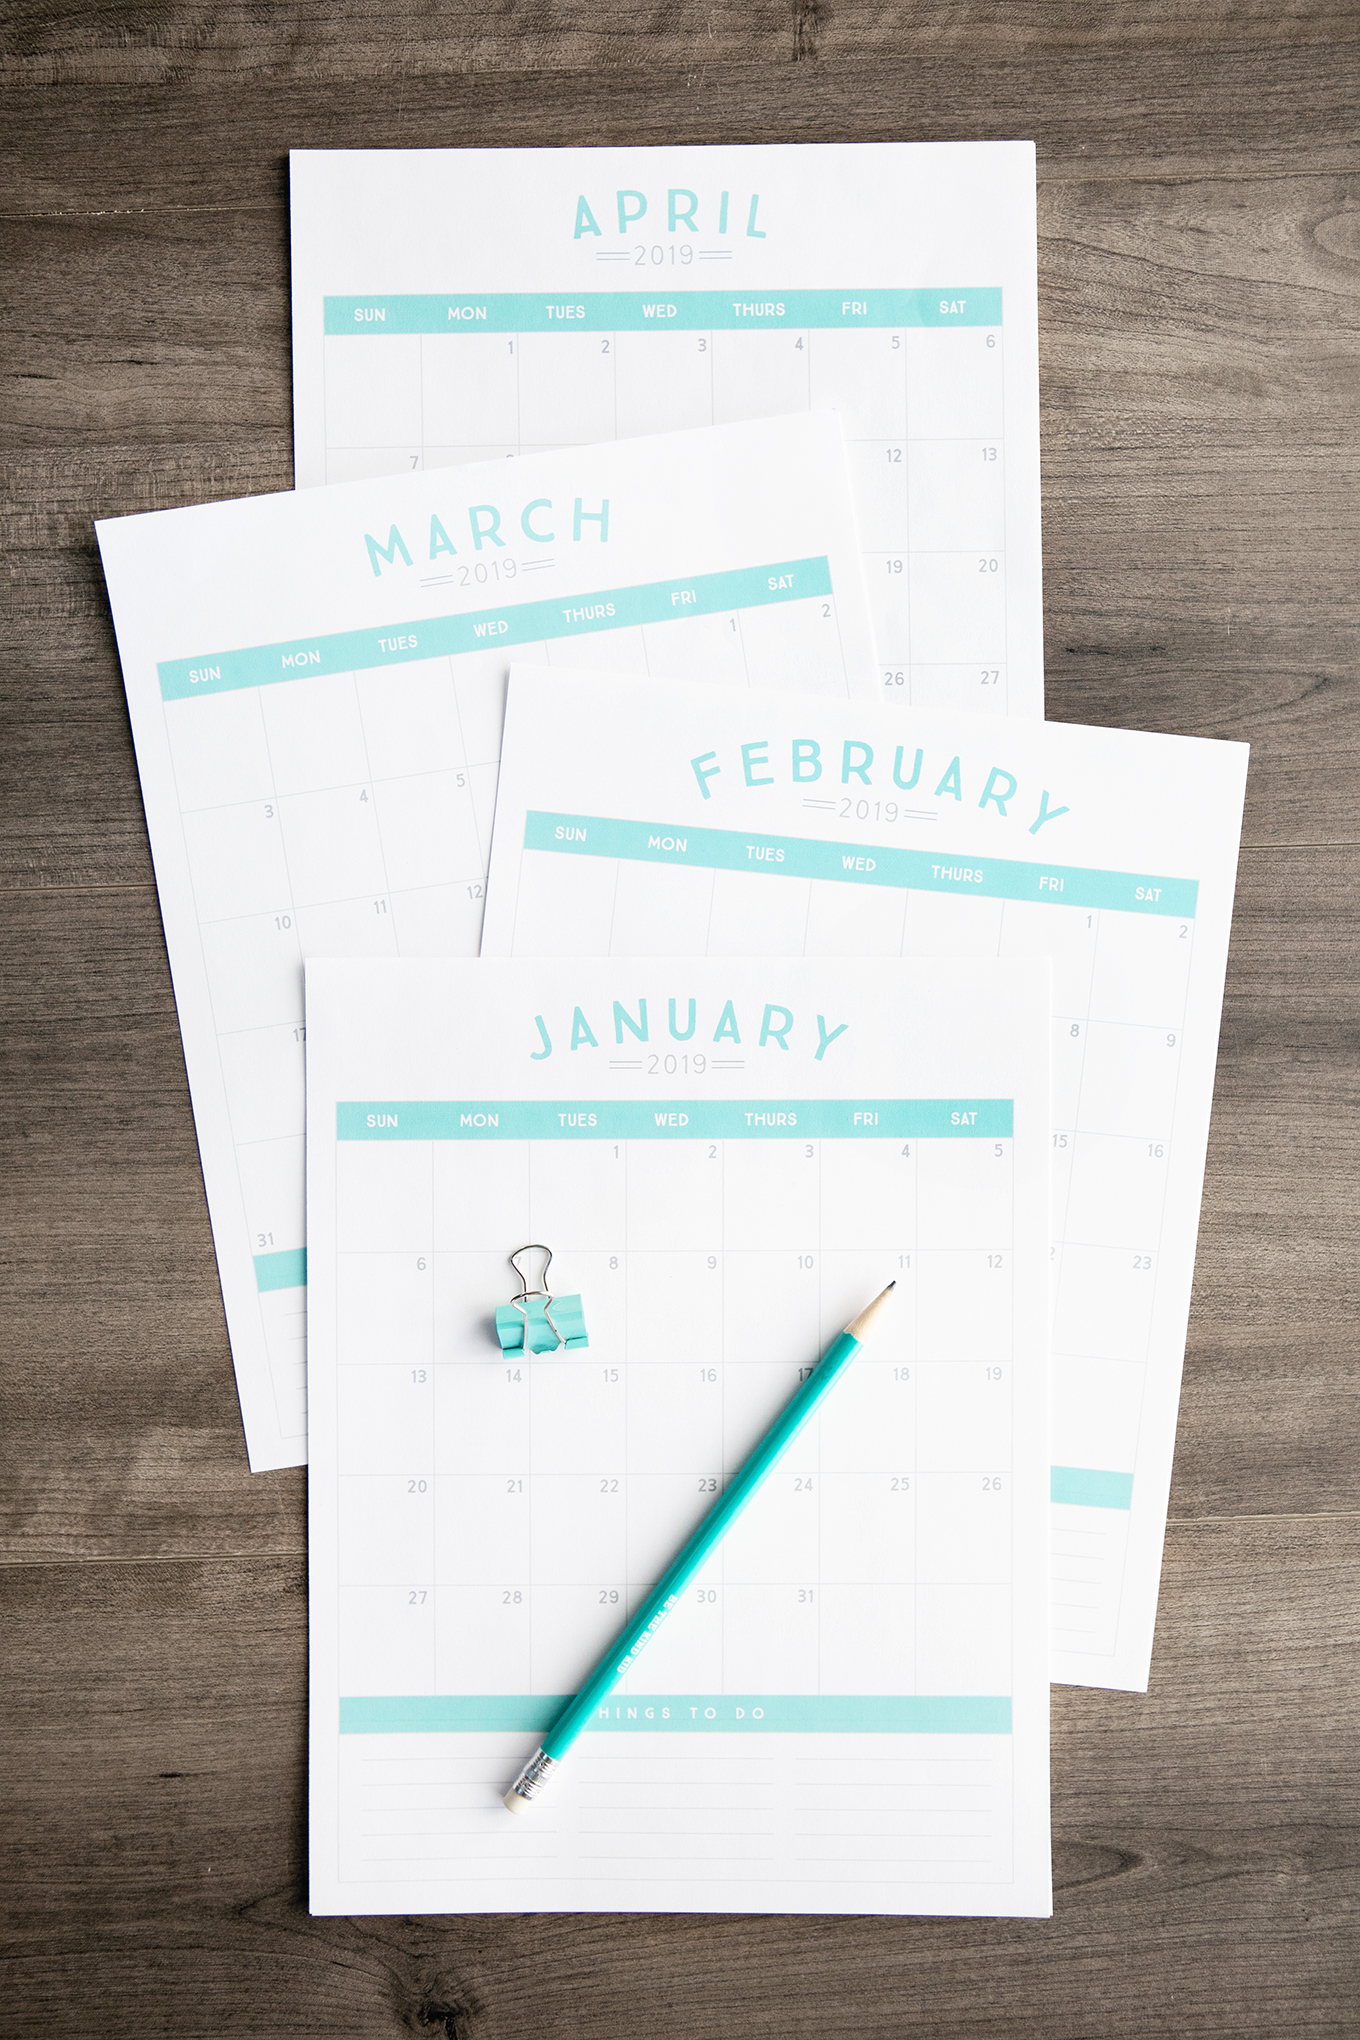 Get organized in the new year with a brand new 2019 printable calendar!